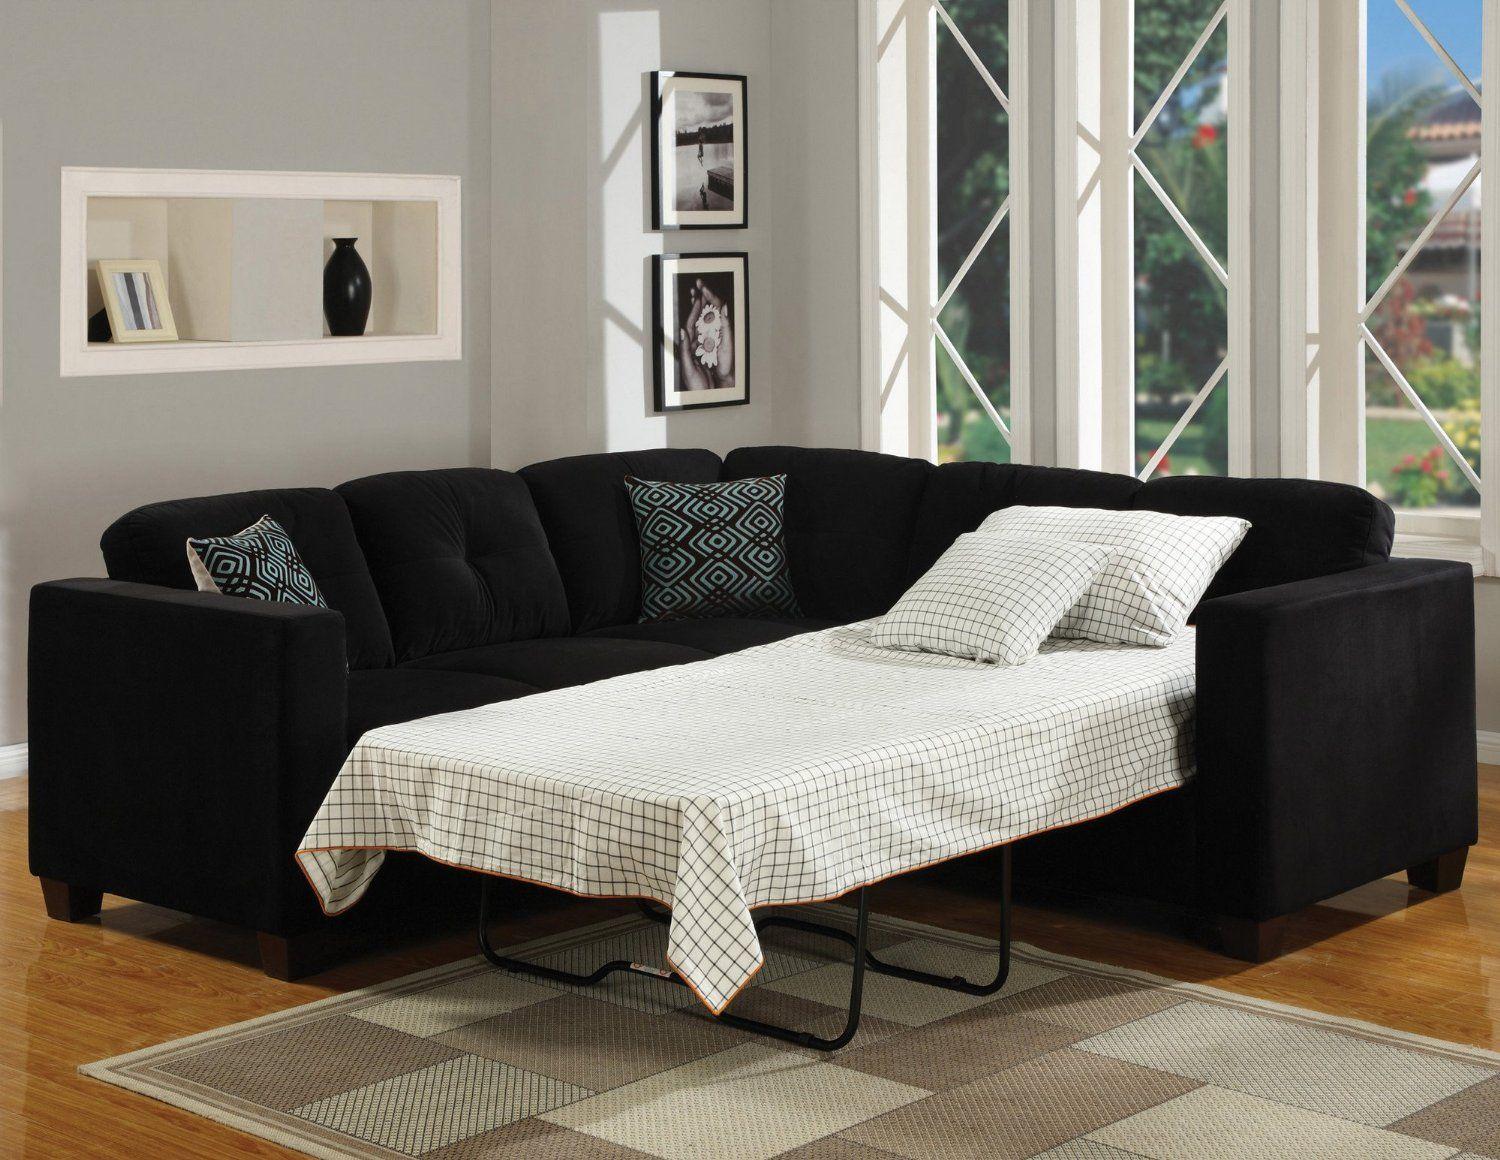 White Bedding on Dark Sofa Bed Mattress for Old Fashioned Living Room with Grey Sofa